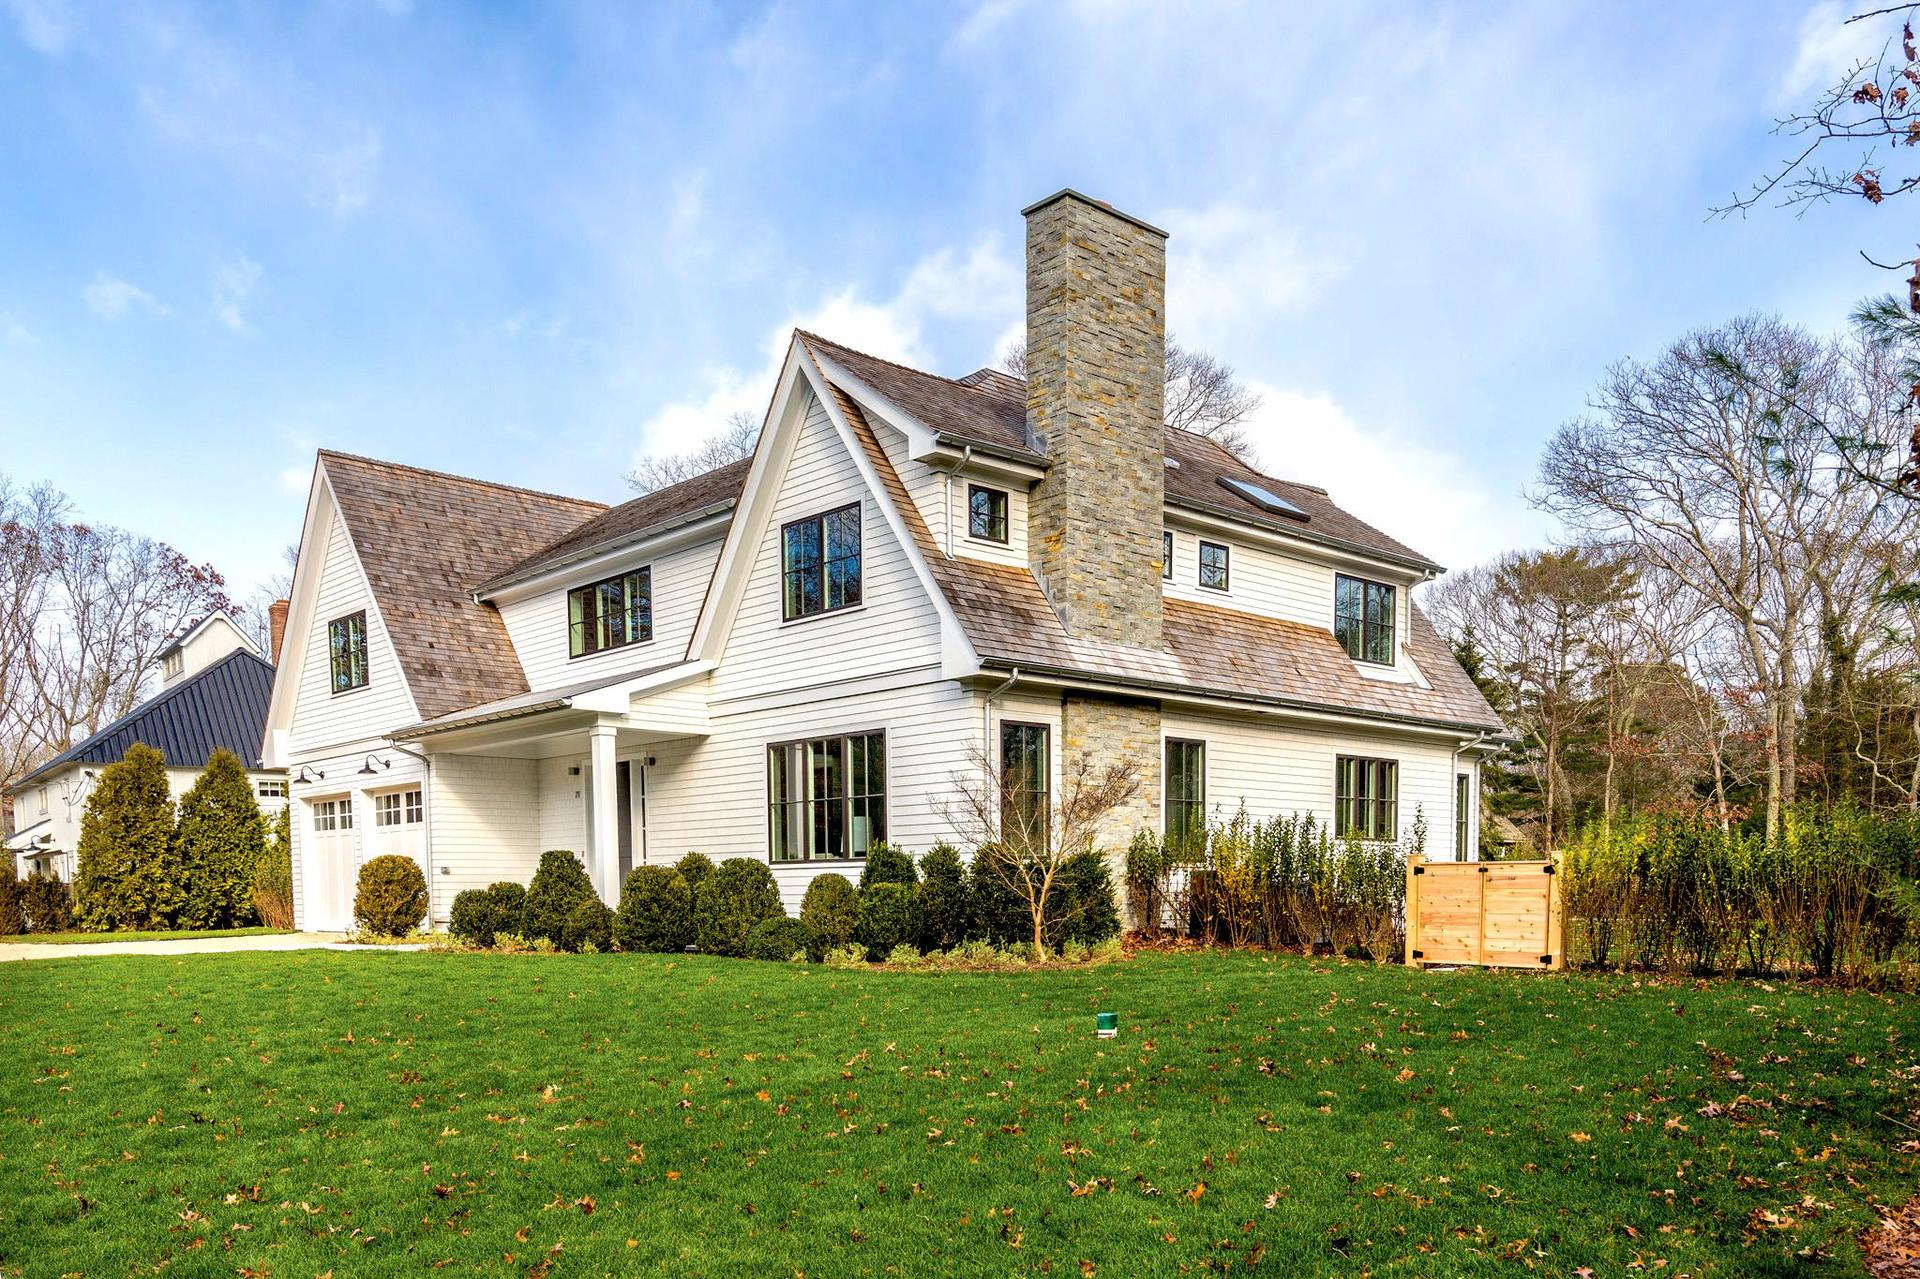 Single Family Home for Sale at Wainscott South New Construction With Pool 71 Westwood Road, Wainscott, New York